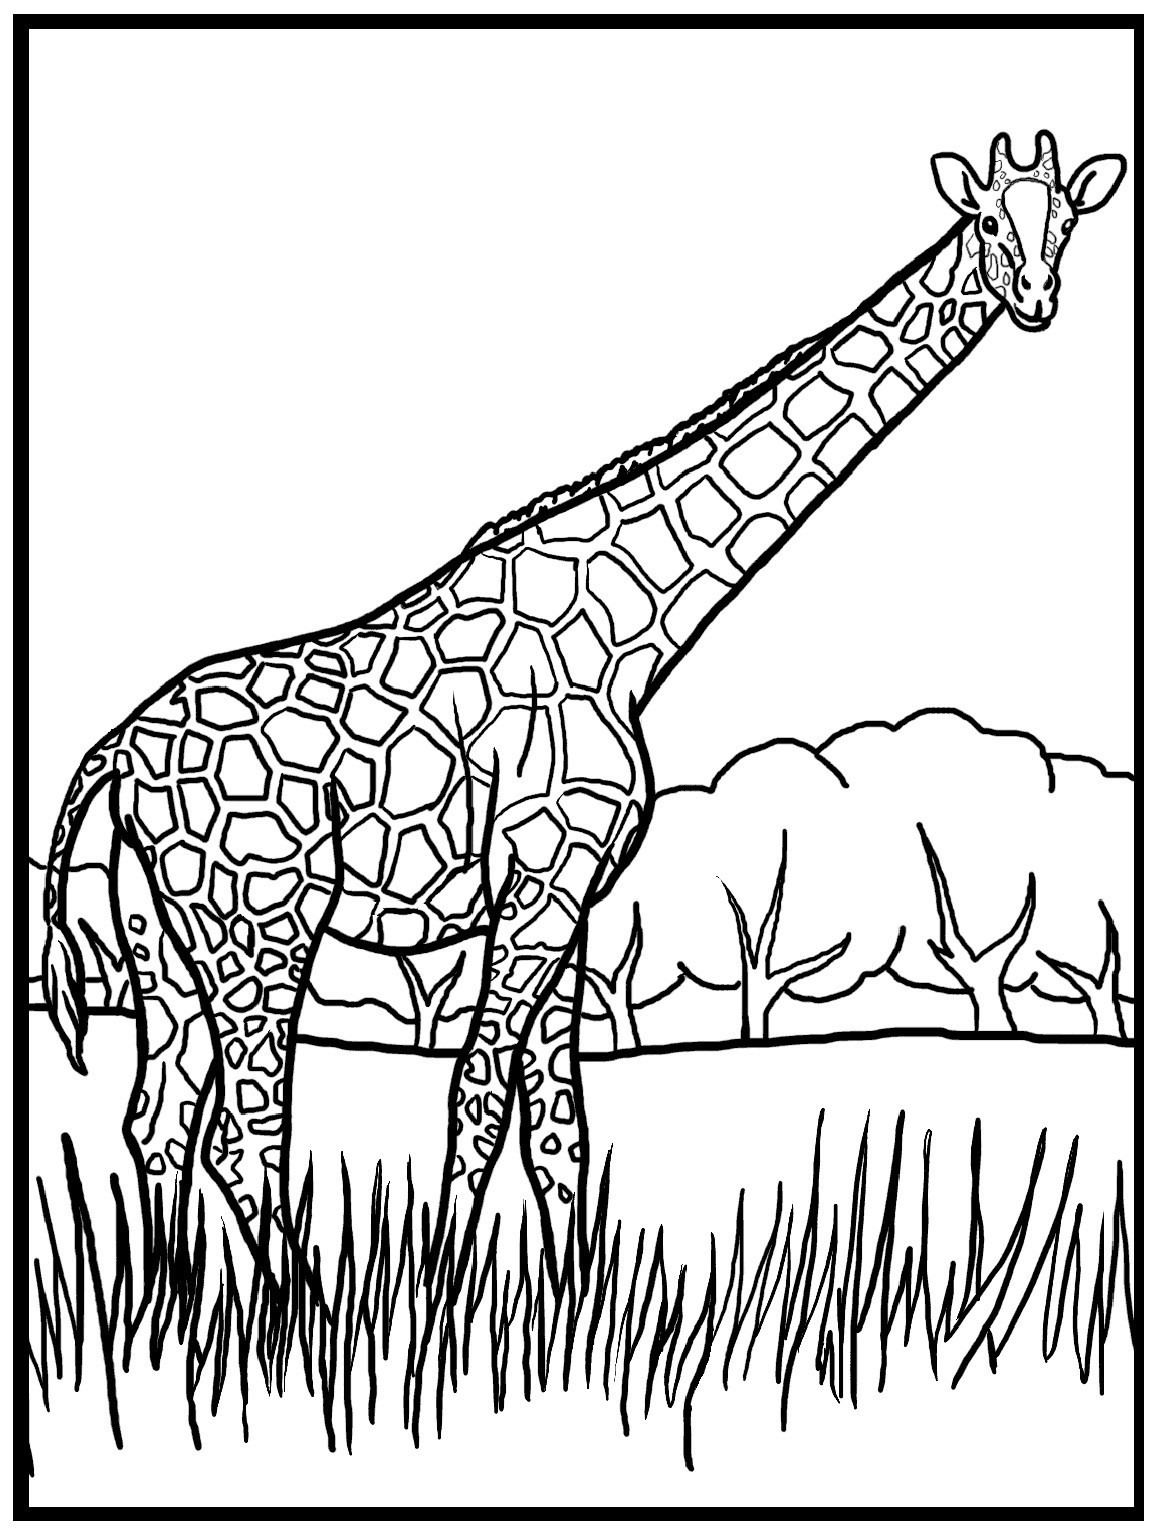 1160x1532 Giraffe Adult Coloring Pages Acpra